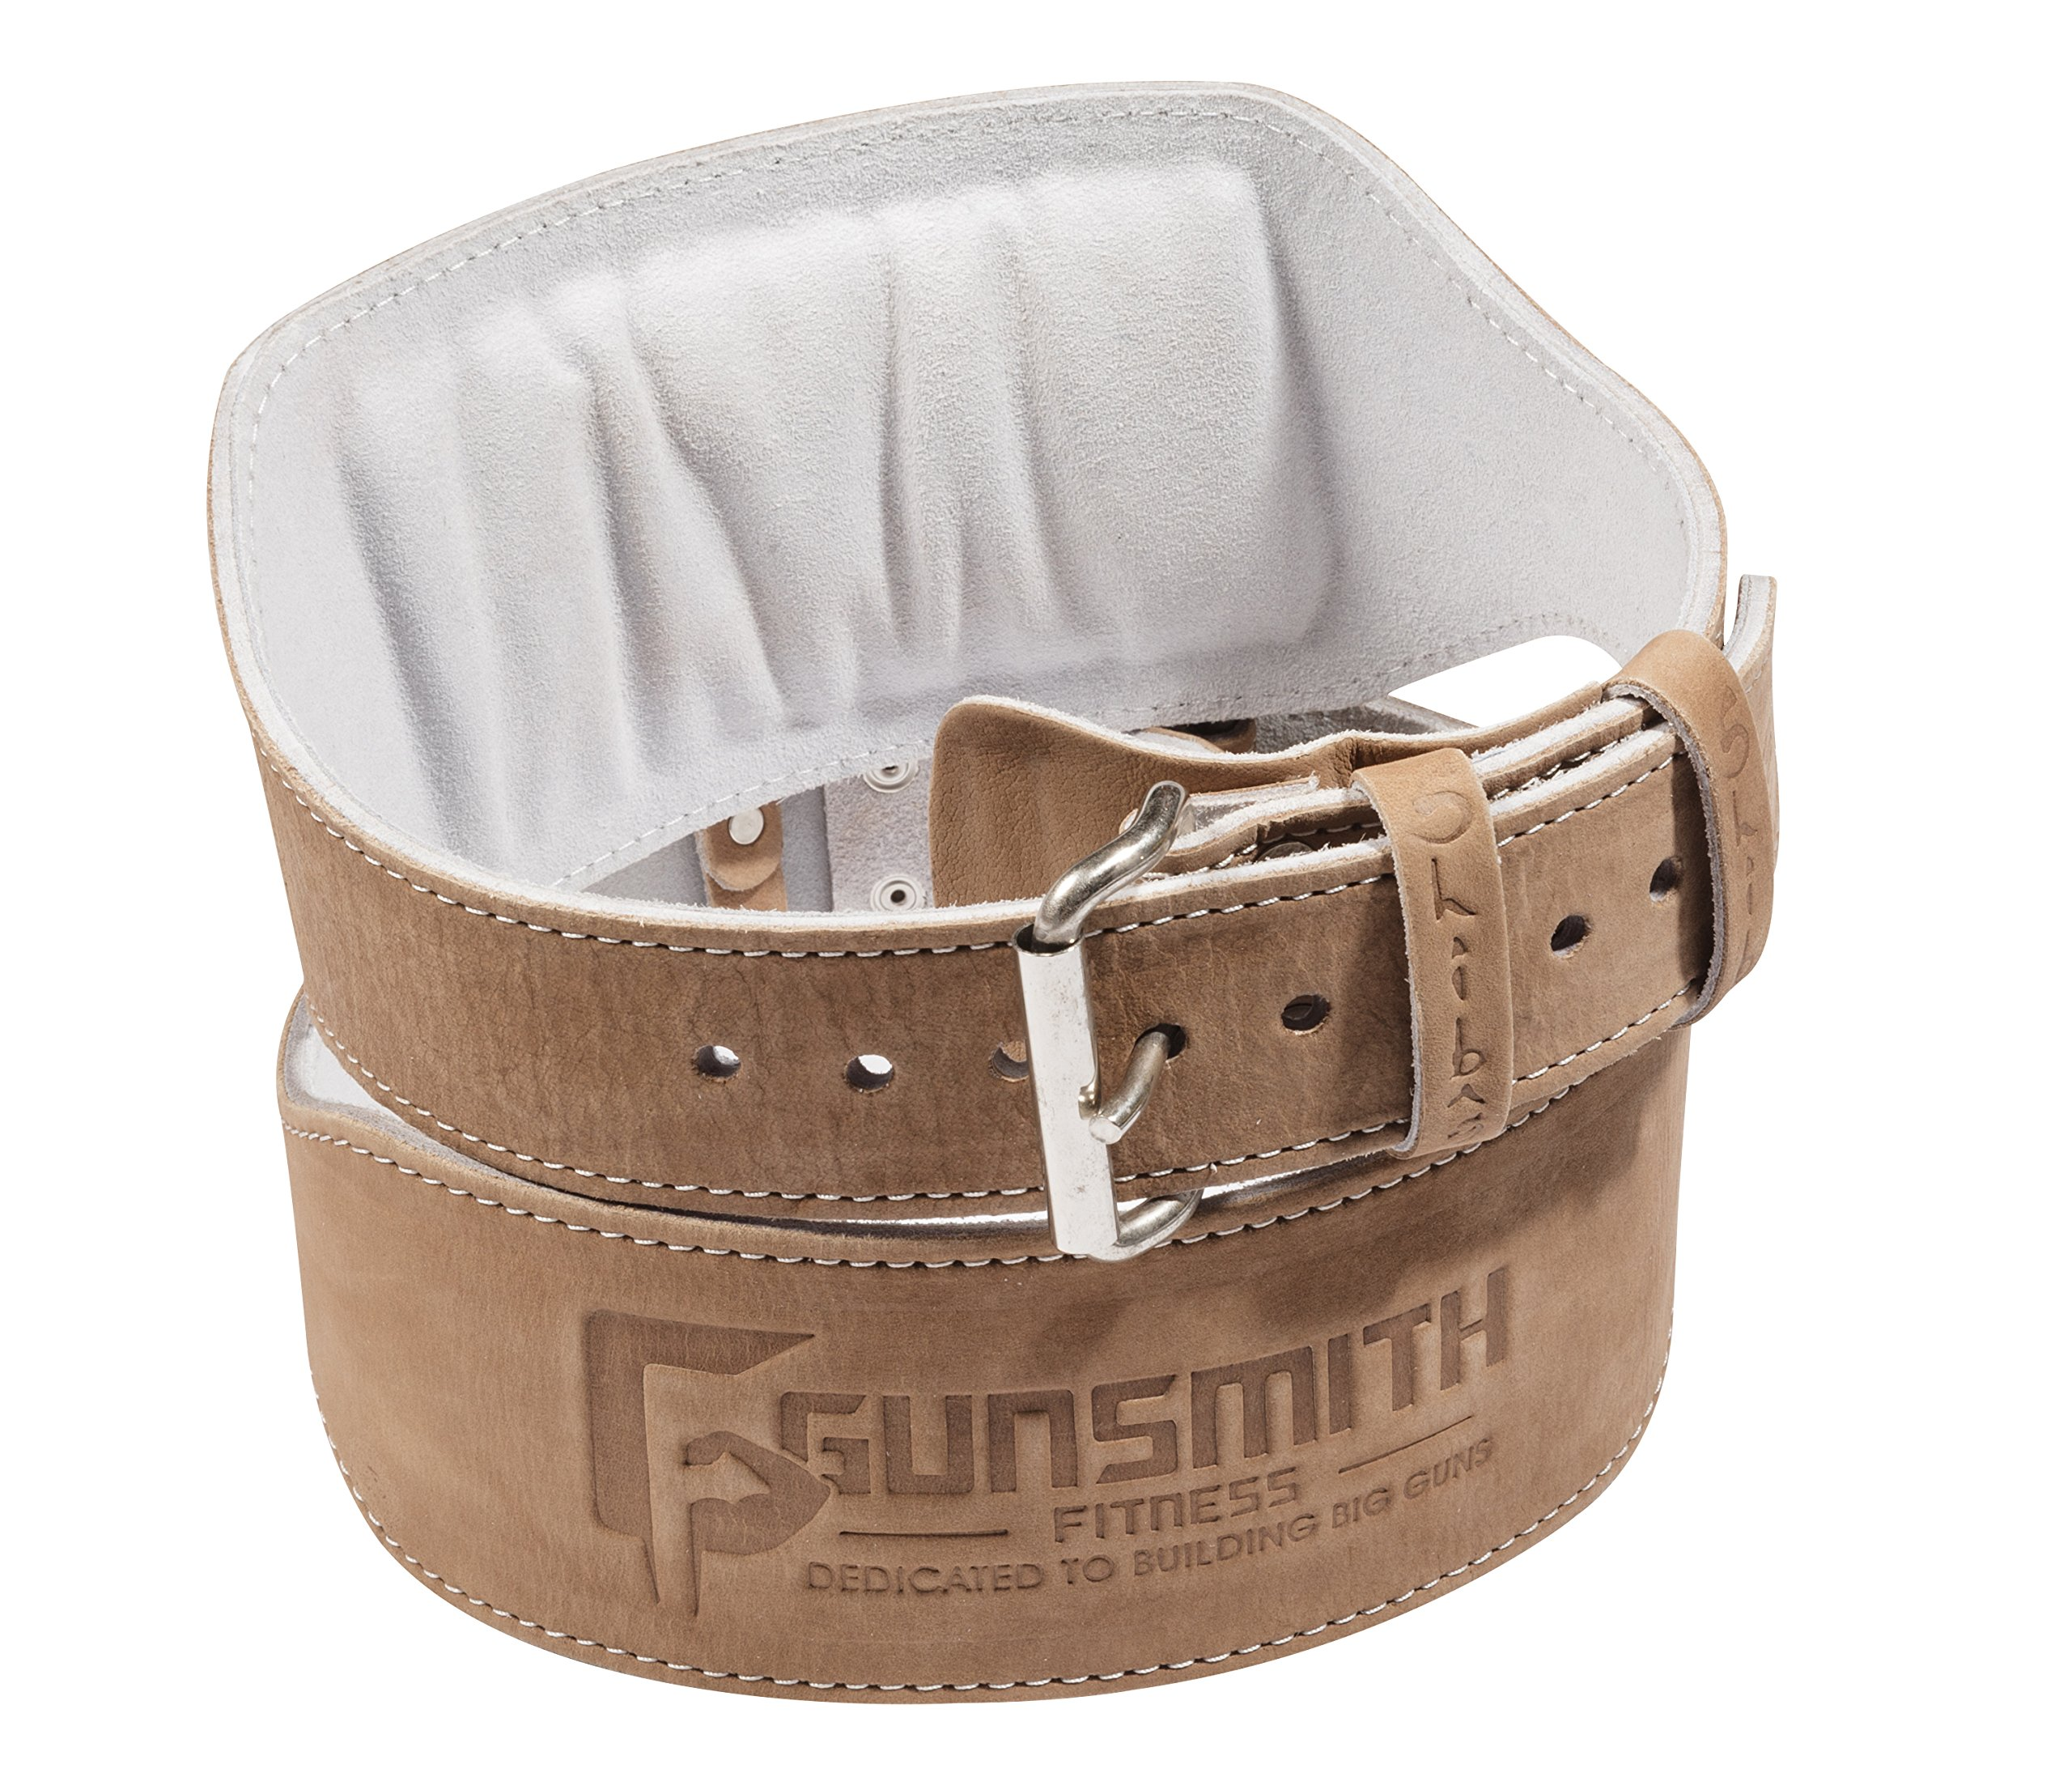 Gunsmith Fitness Premium 100% Real Genuine Leather Individually Handmade, Advanced Weight Lifting, Powerlifting & Bodybuilding (4-Inch width, XX Large (Fits 42-48 inches))